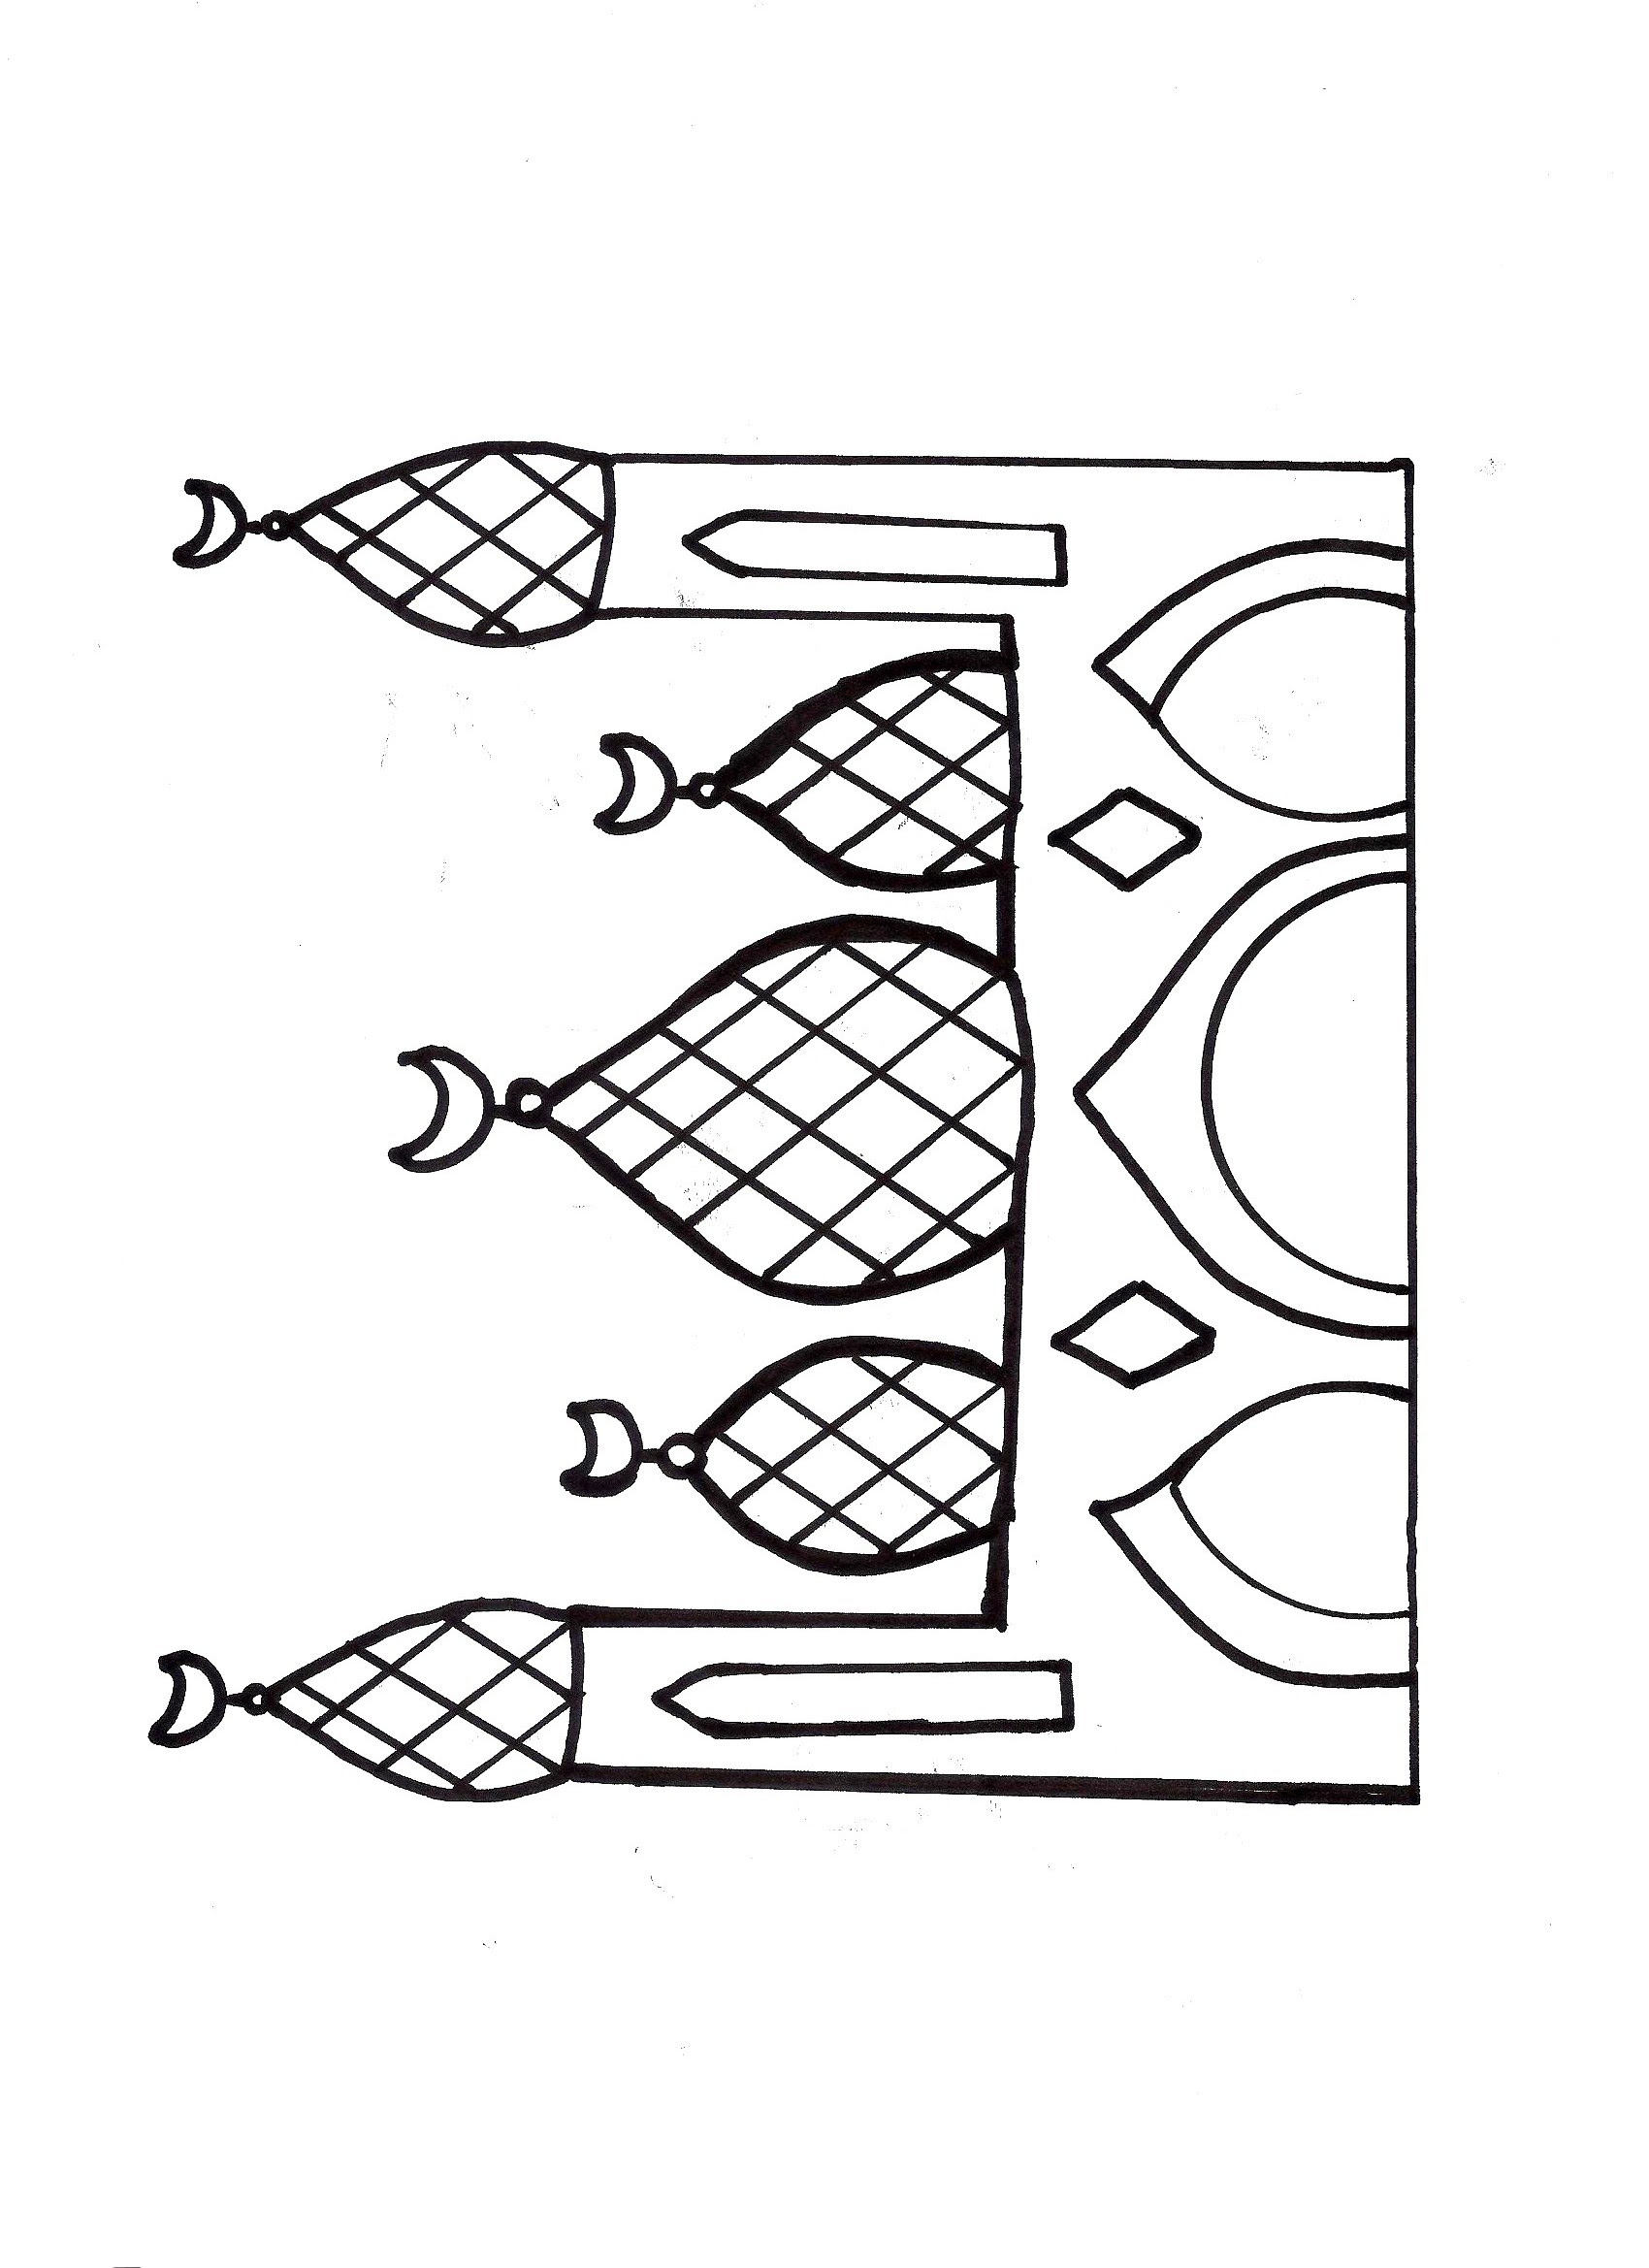 Mosque Drawing For Kids At Getdrawings Com Free For Personal Use